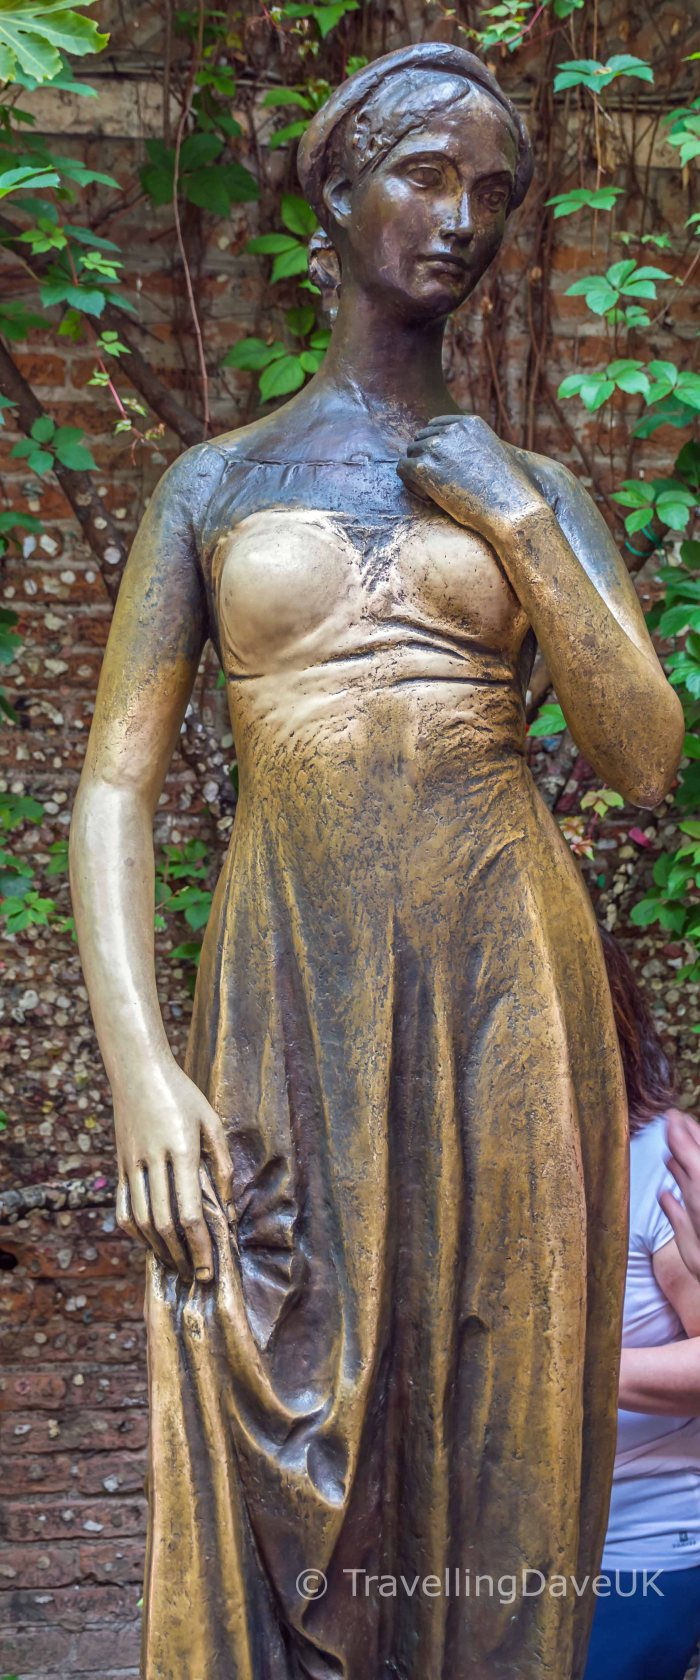 Bronze statue of Juliet in Verona